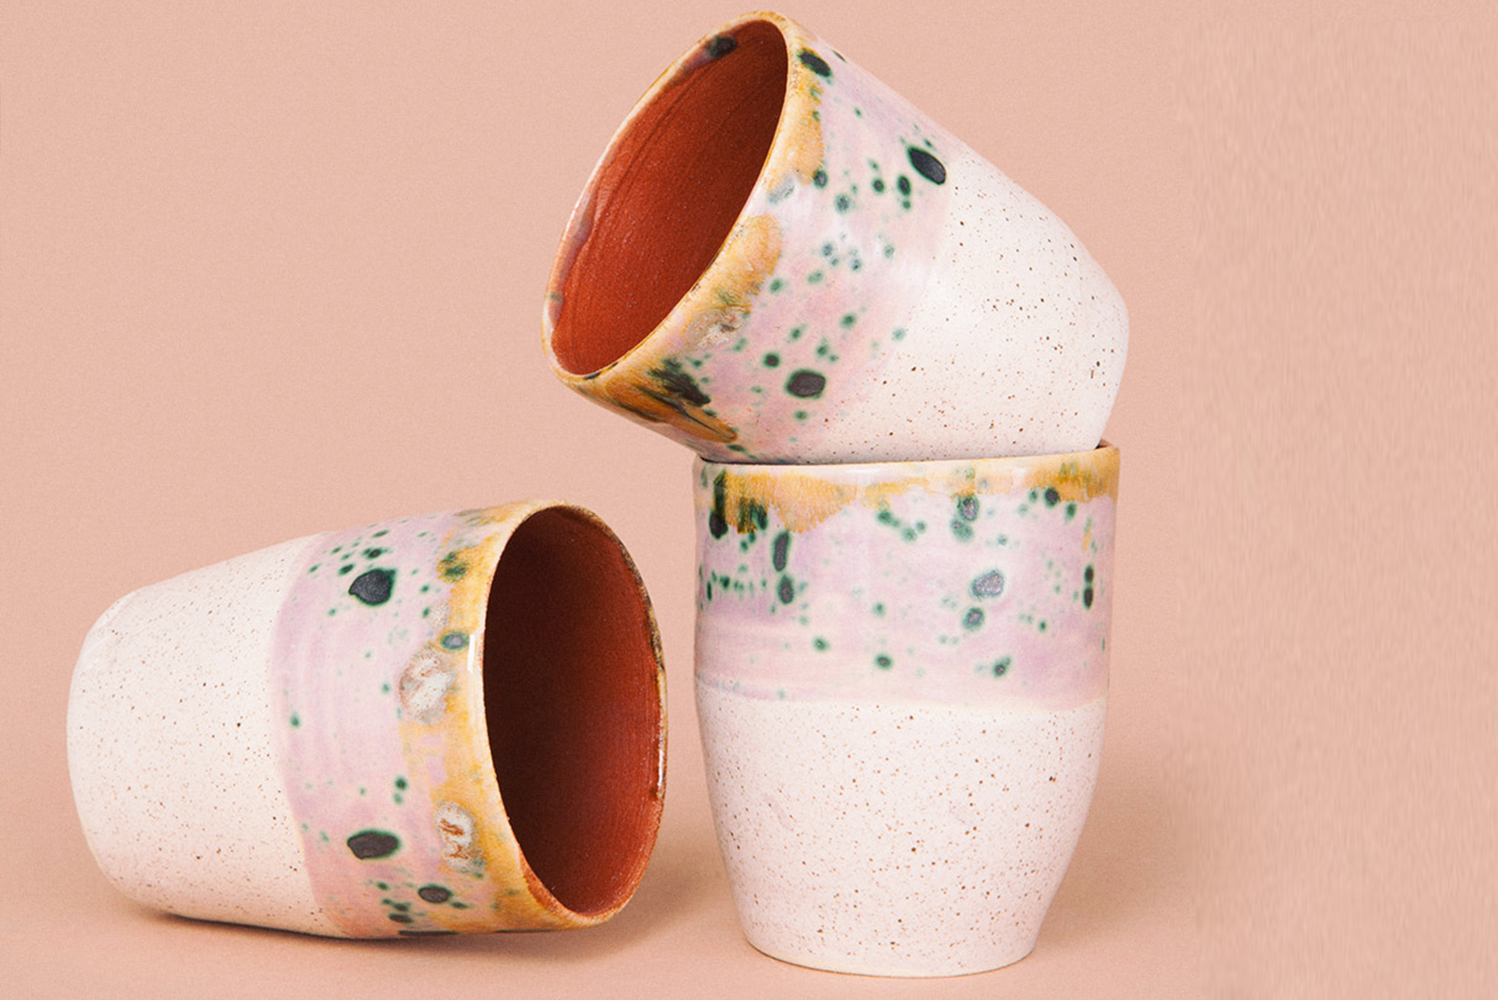 Some of the ceramics come in browns, turquoise and golds.